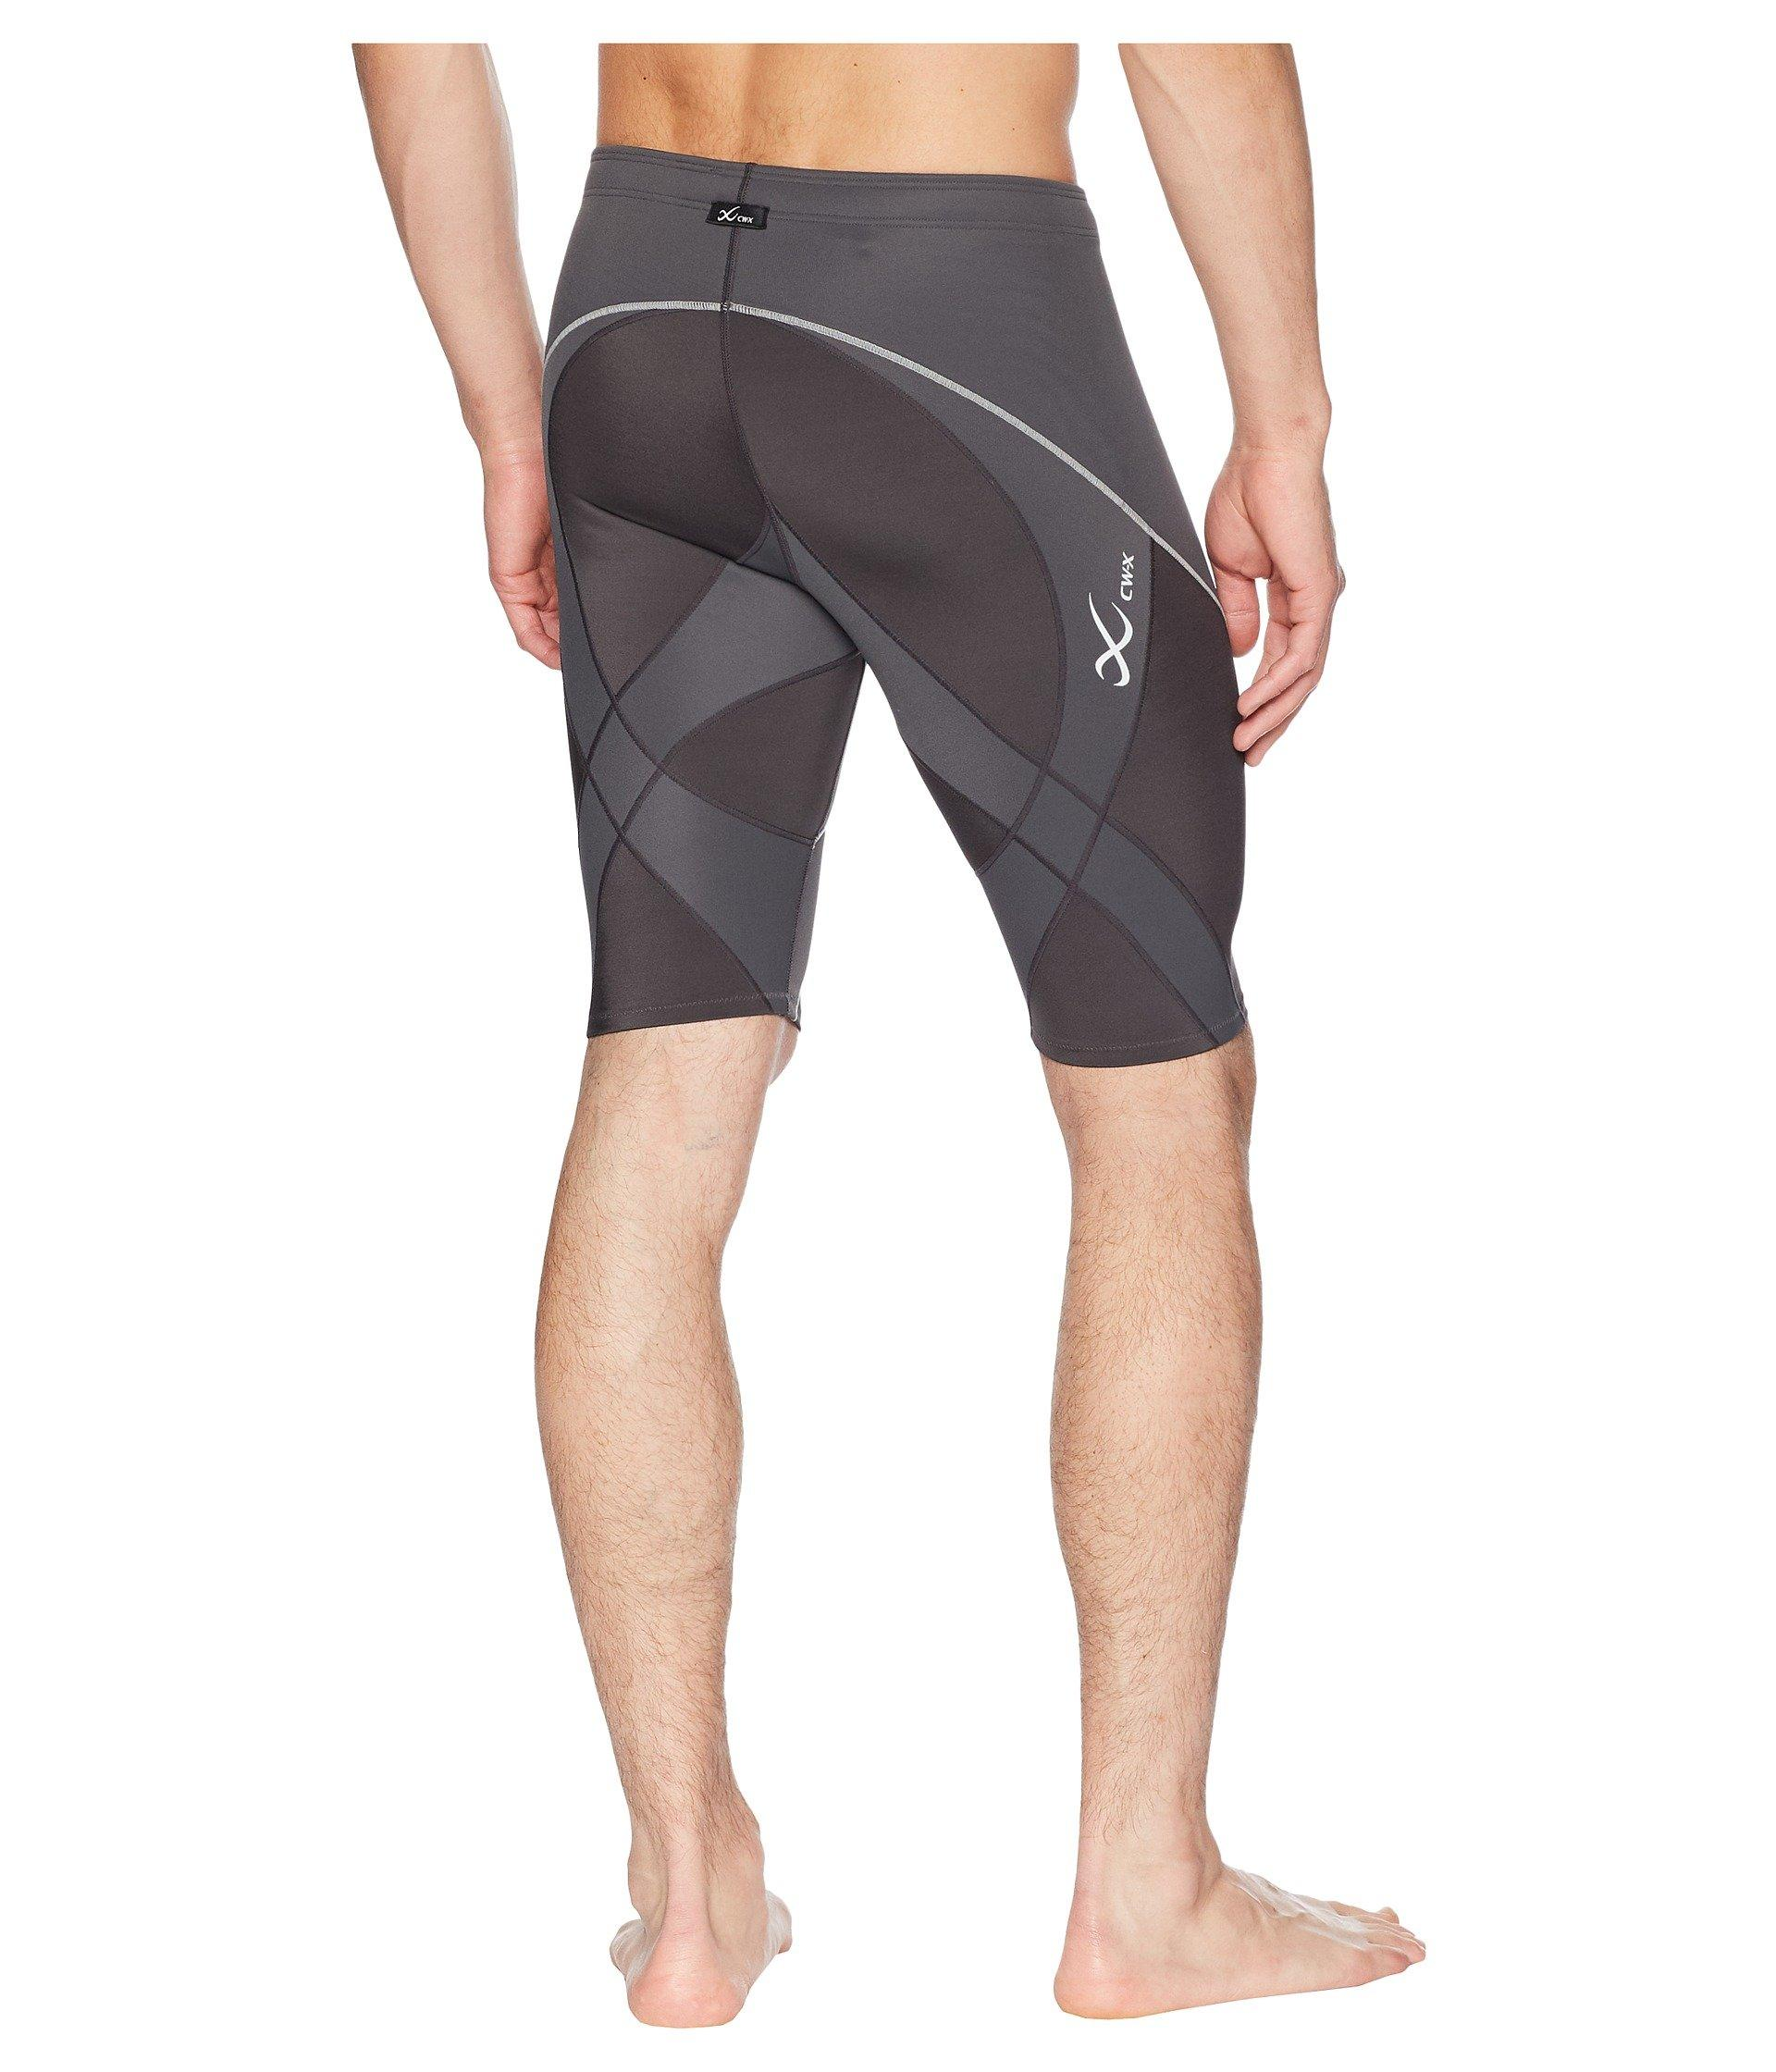 CW-X Men/'s   Mid Rise Endurance Pro Compression Shorts Charcoal//Charcoal//Silver